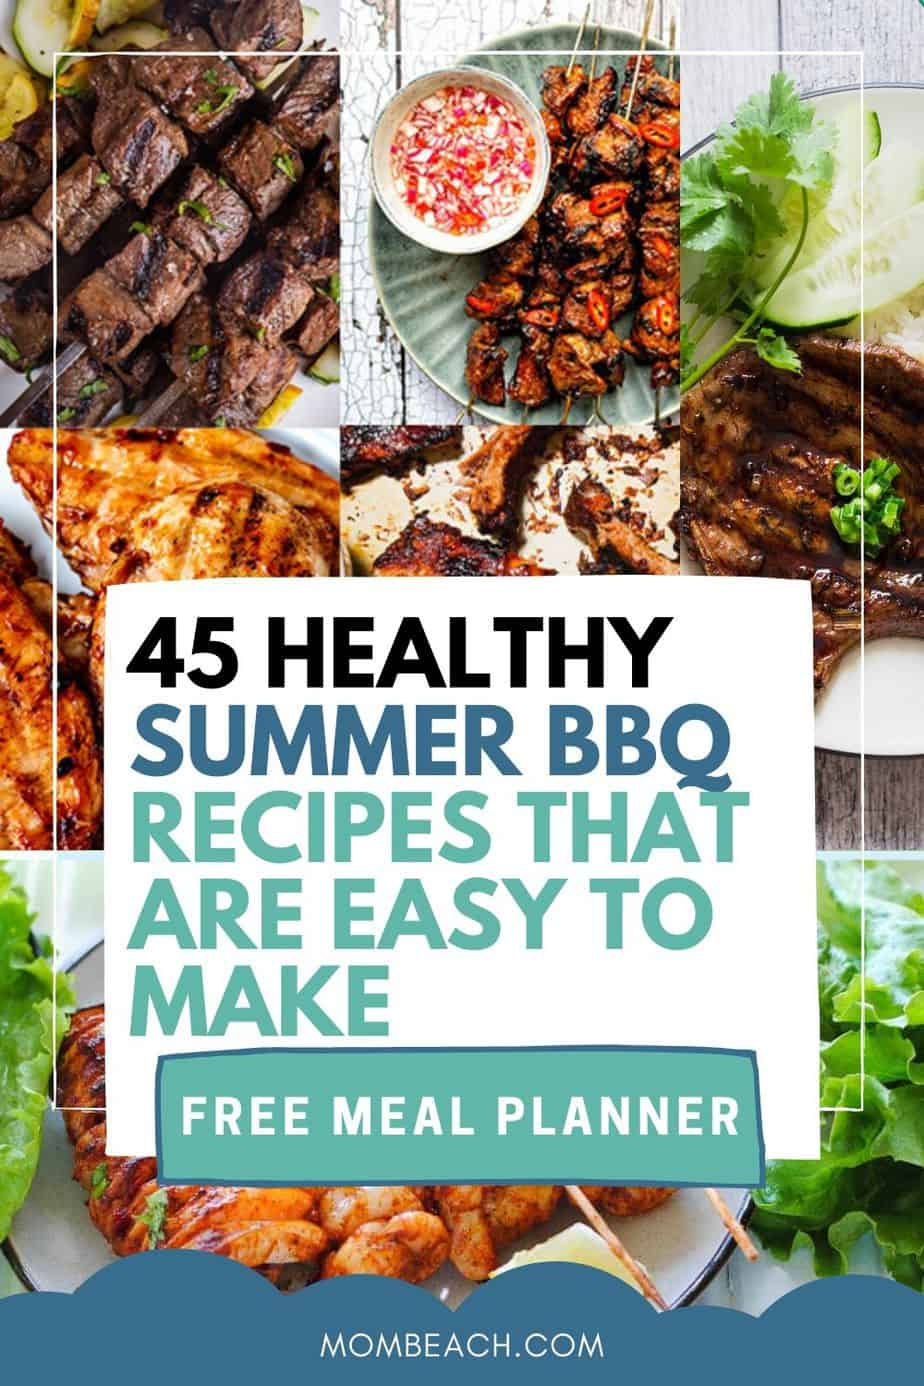 You won't believe how amazing these healthy Summer BBQ recipes taste! They are perfect for a crowd and for the family. We have meat, chicken, lamb, shrimp, pork, and vegan recipes rounded up just for you. Get these recipes created hot off the grill at your next cookout. There are keto and vegan recipes that are easy to make for dinners. #healthysummerbbqrecipes #summerrecipes #summerBBQrecipes #bbqrecipes #summerBBQrecipesforacrowd